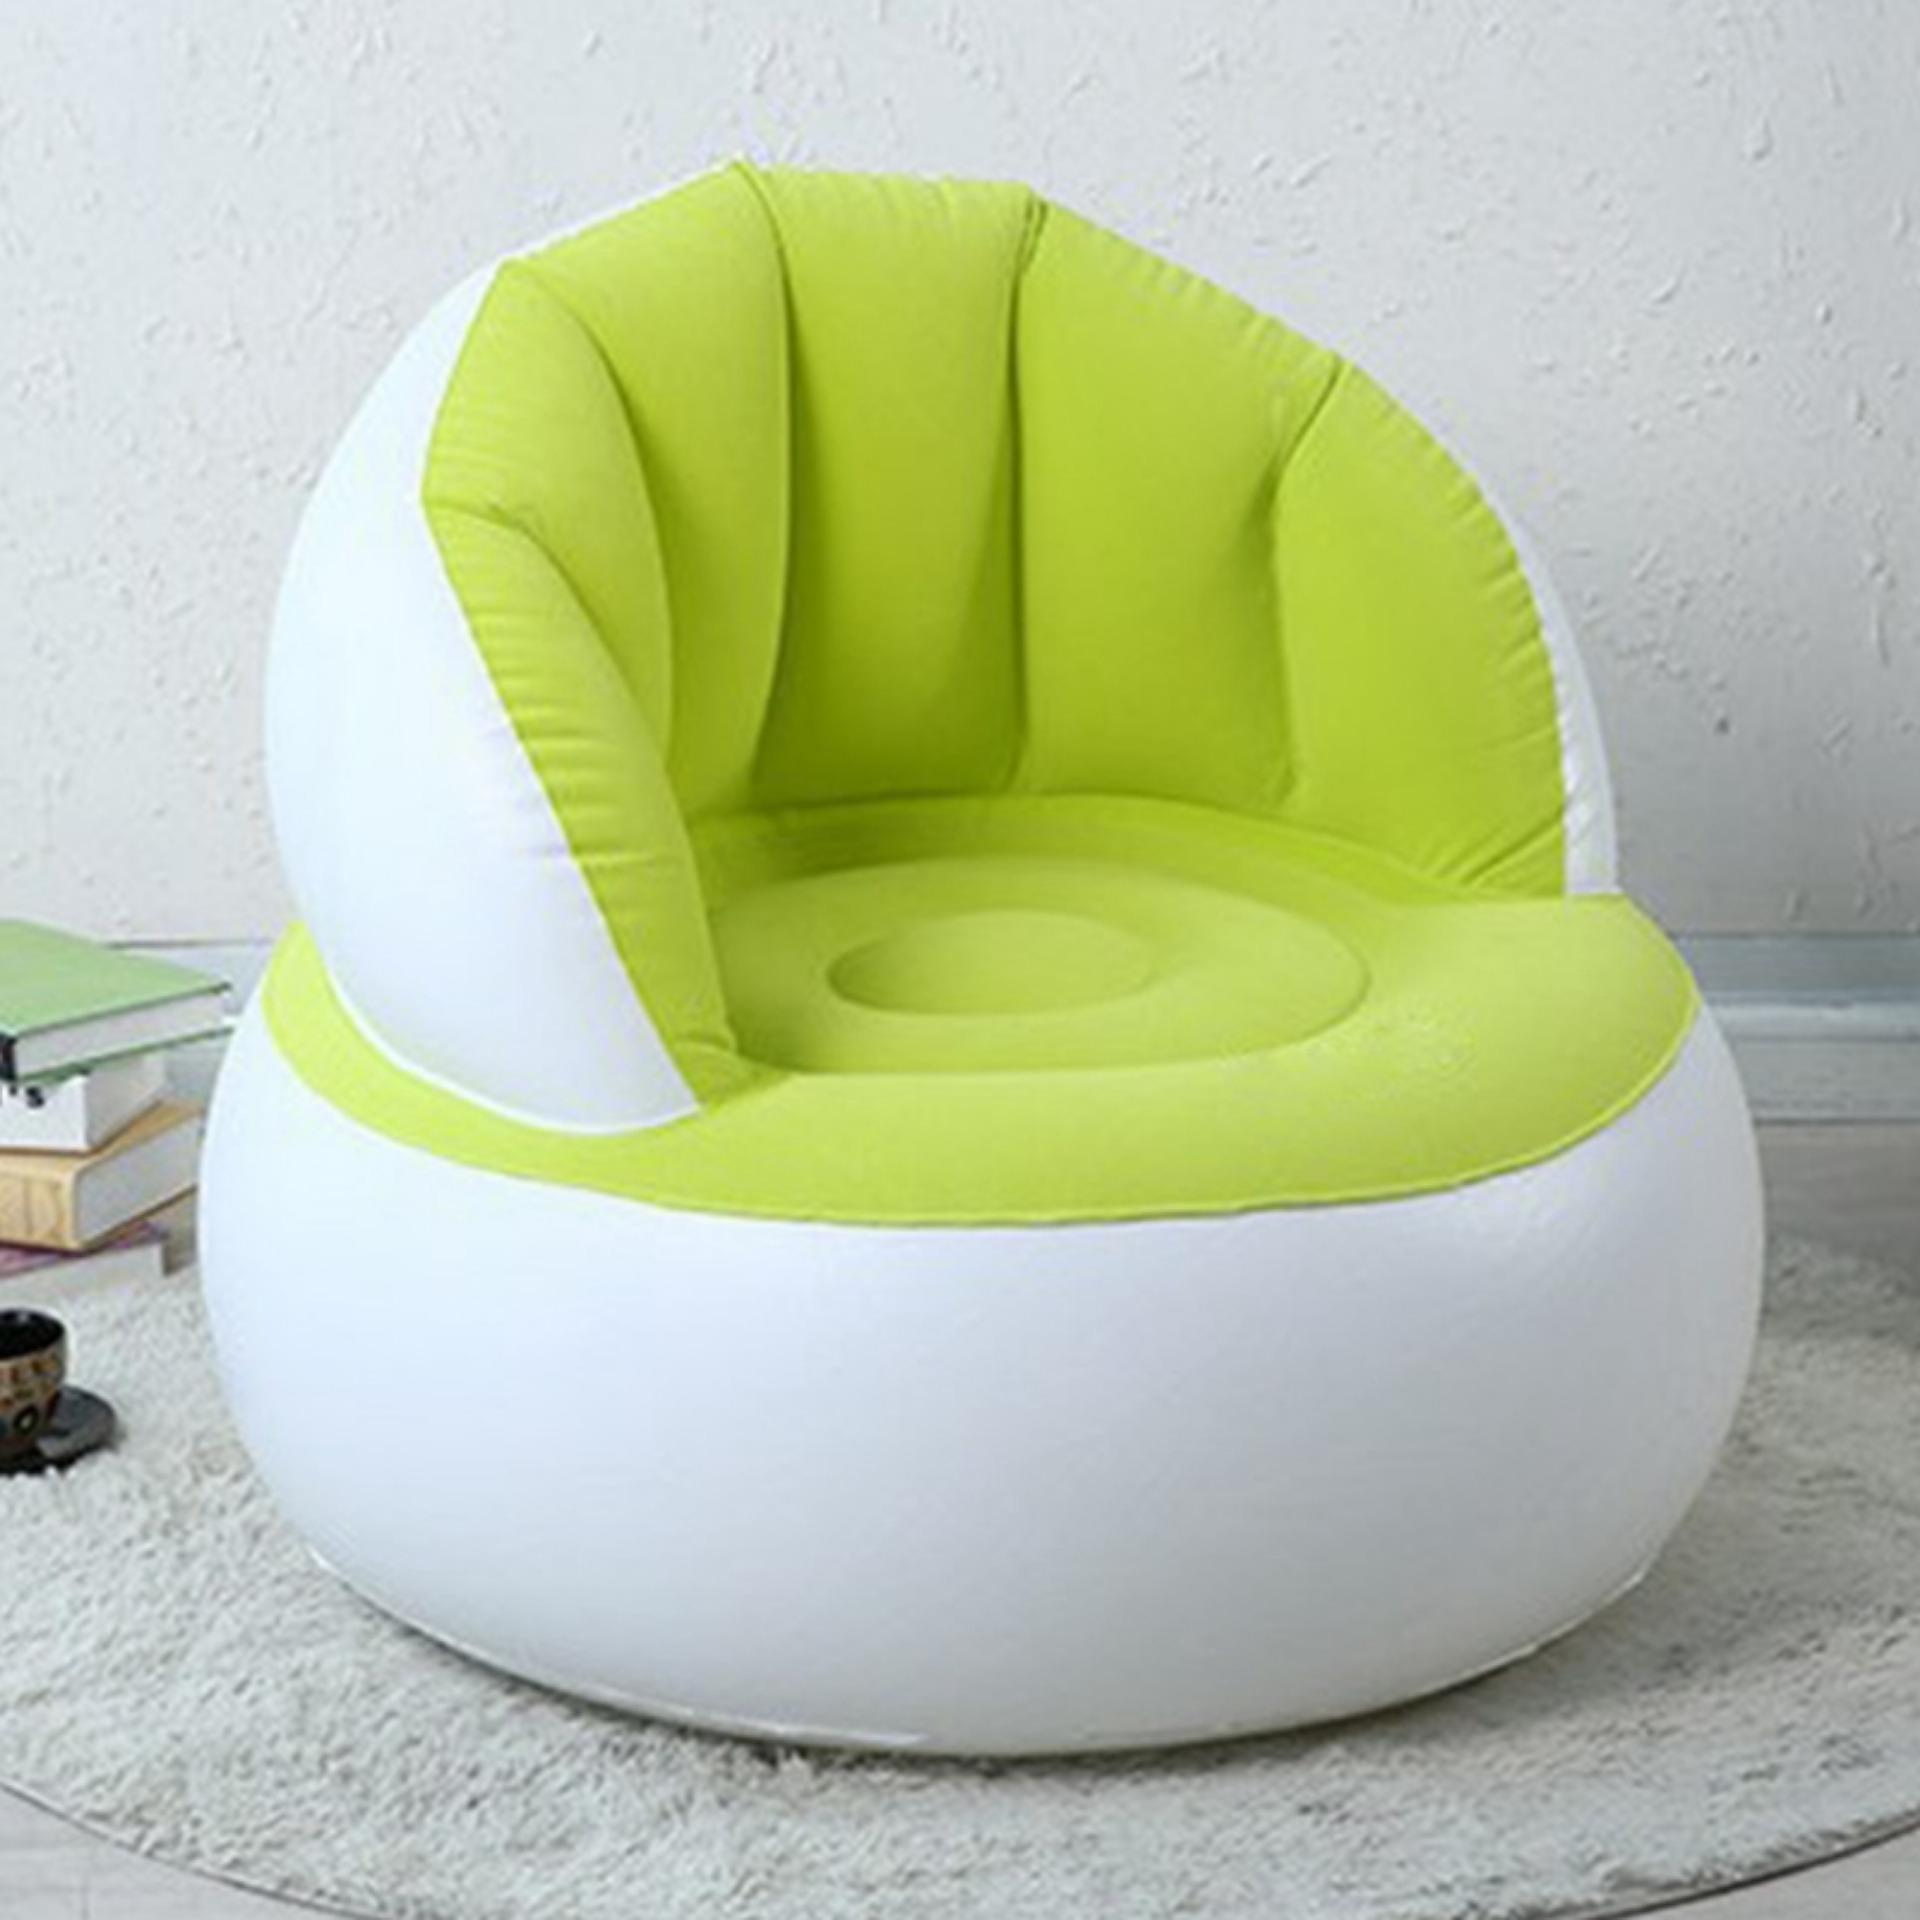 Abusun Hot Selling Home Furniture Inflatable Sofa Air Seat ChairLazy Reading Relaxing Bean Bag for Living Room - intl